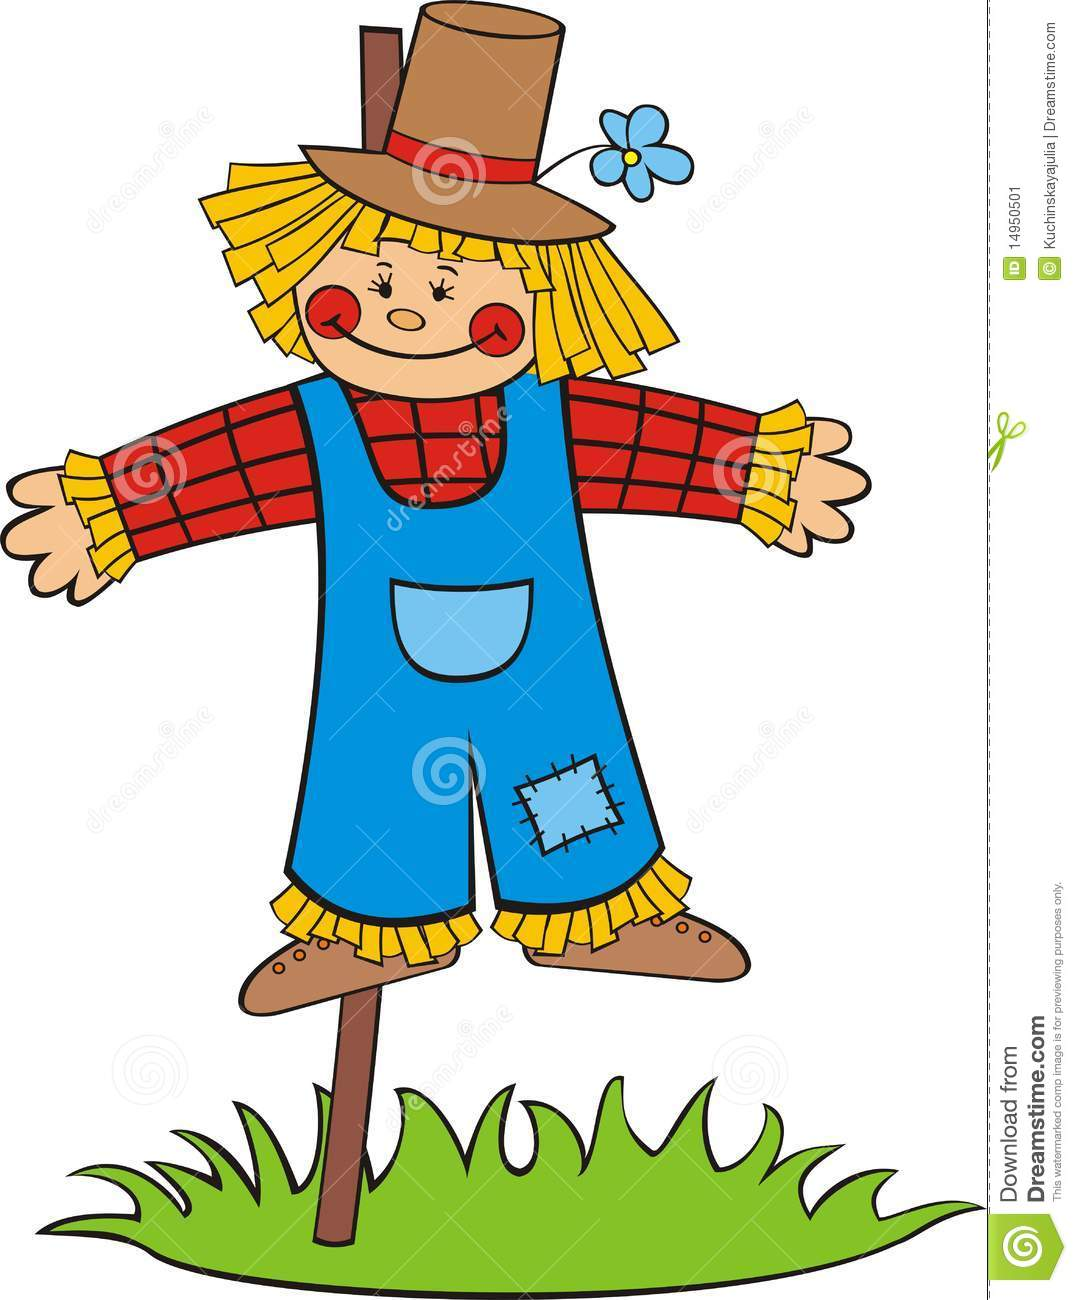 Images of scarecrows free. Scarecrow clipart fun